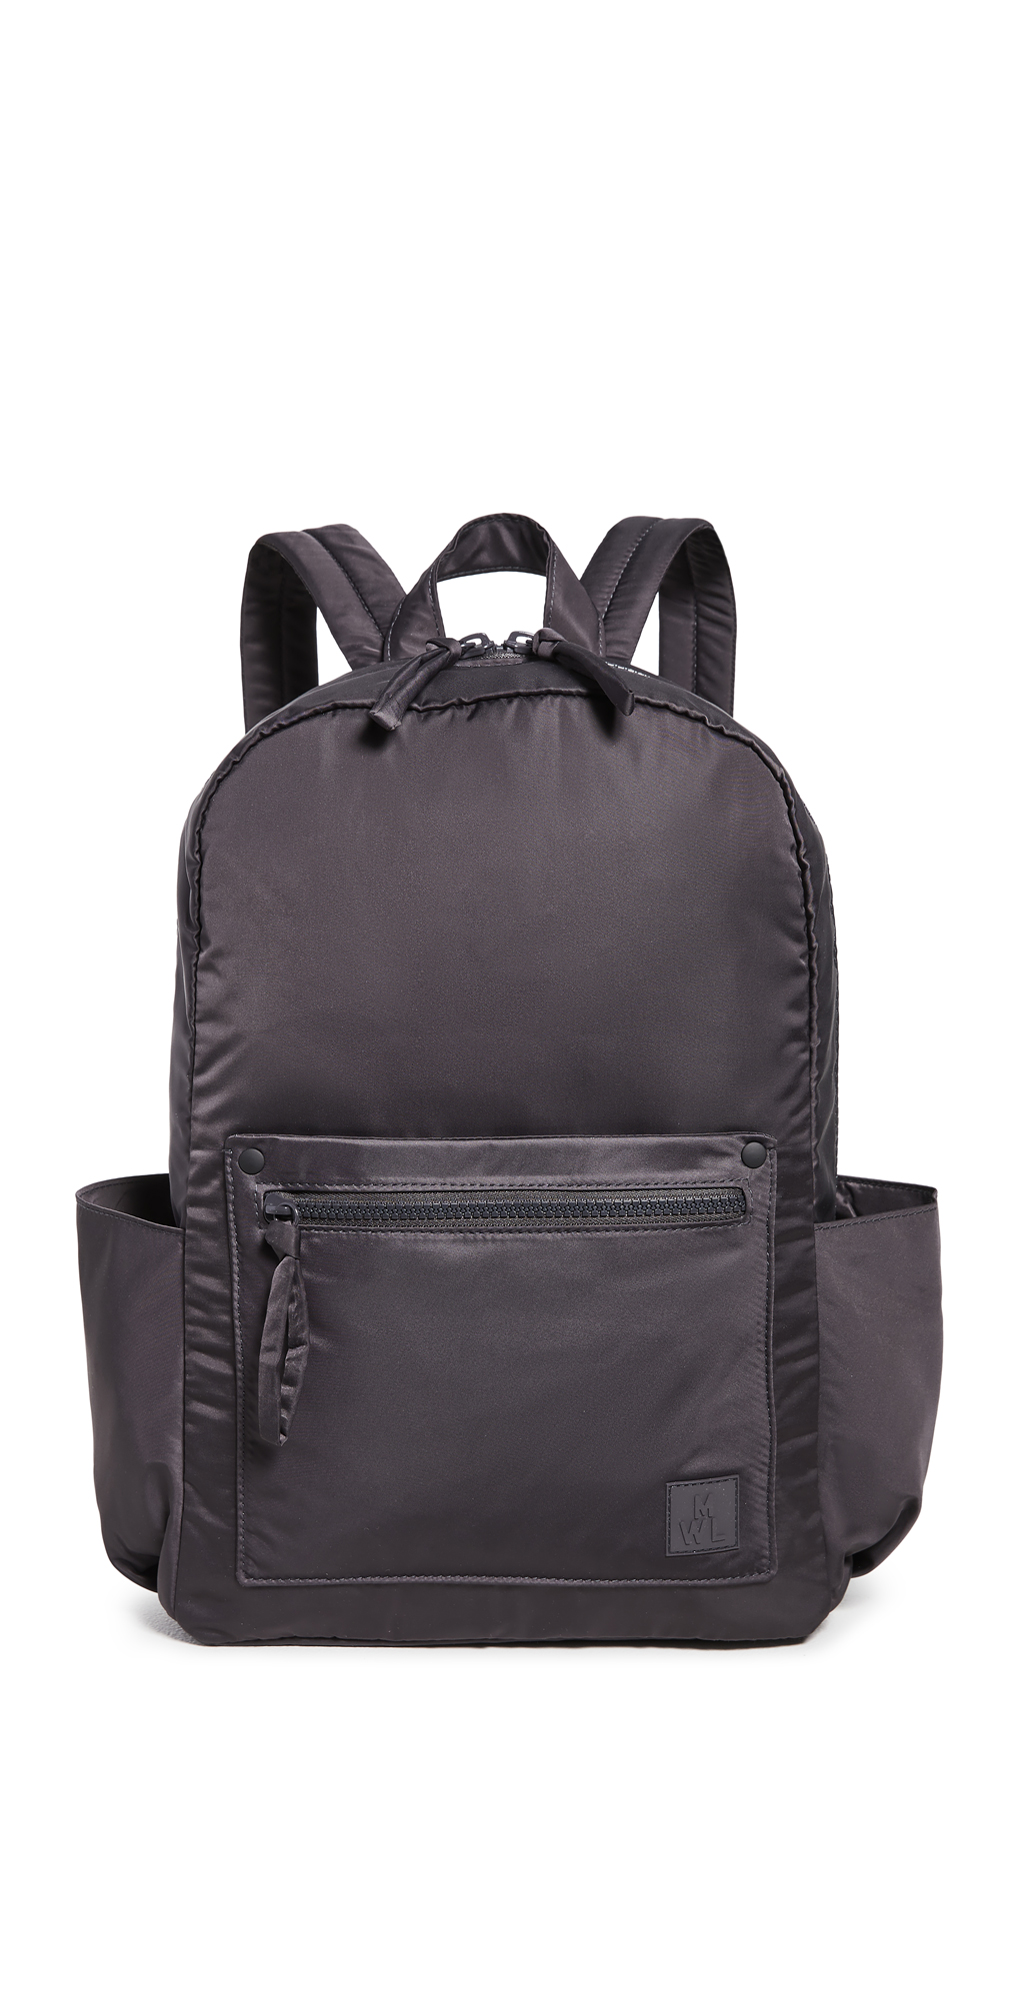 Madewell Travel Nylon Backpack